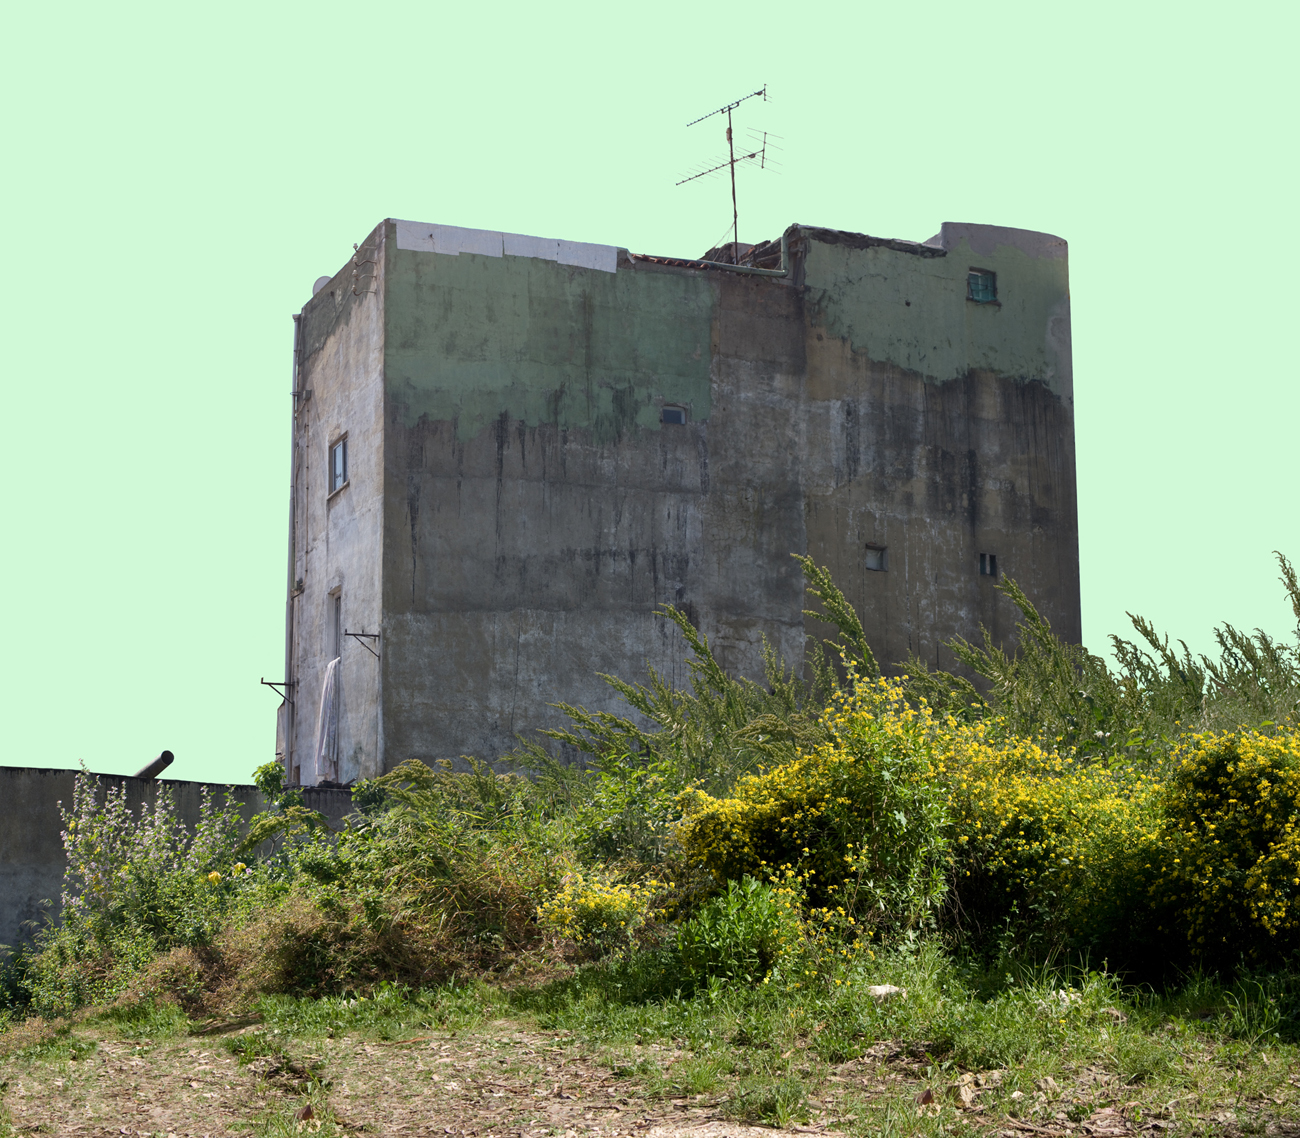 singular monolithic building with almost blind wall in greyish-green shades of decrepitude